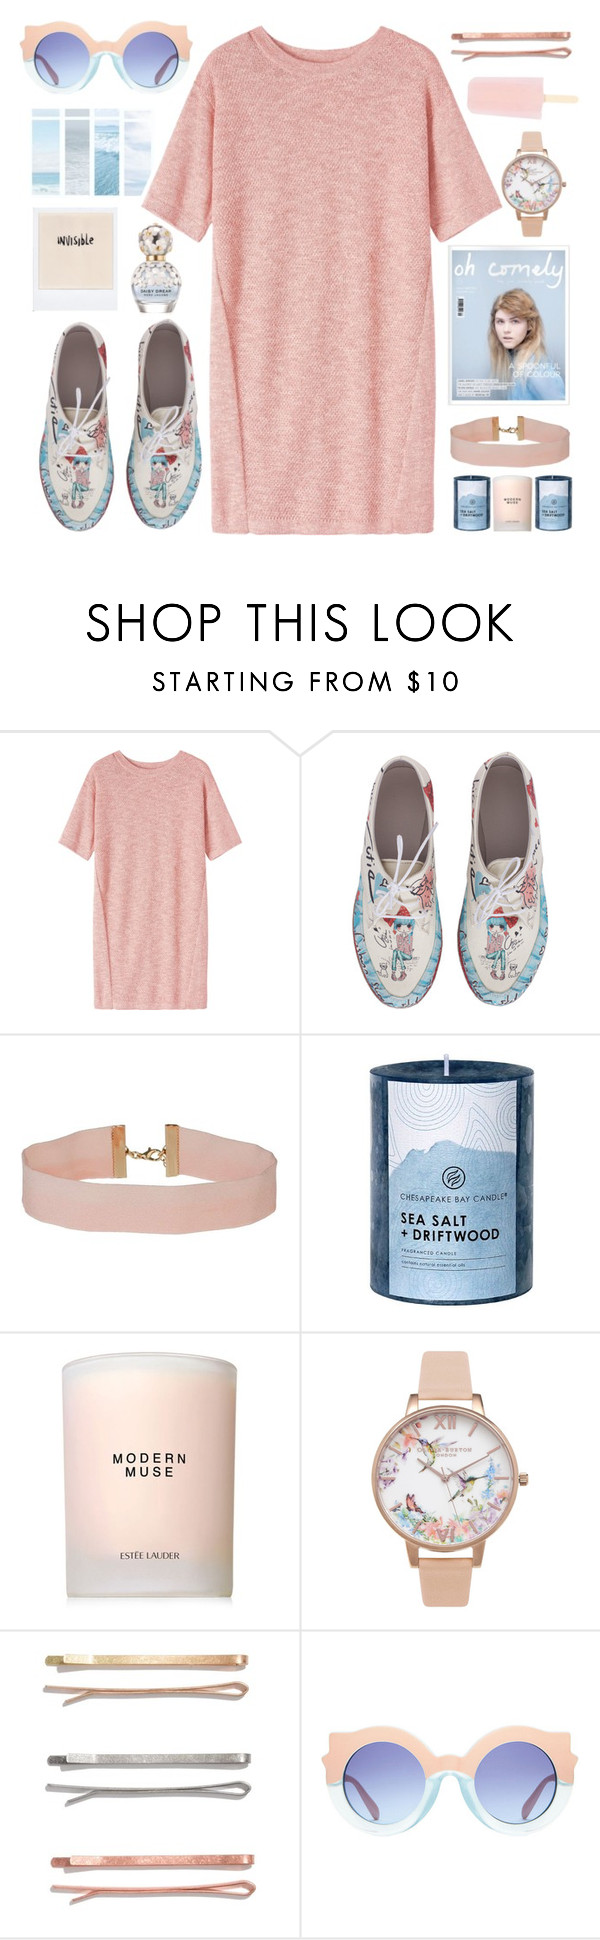 """""""oh la la"""" by seriouskatya ❤ liked on Polyvore featuring Toast, Goby, Miss Selfridge, Chesapeake Bay Candle, Estée Lauder, Olivia Burton, Madewell and Marc Jacobs"""